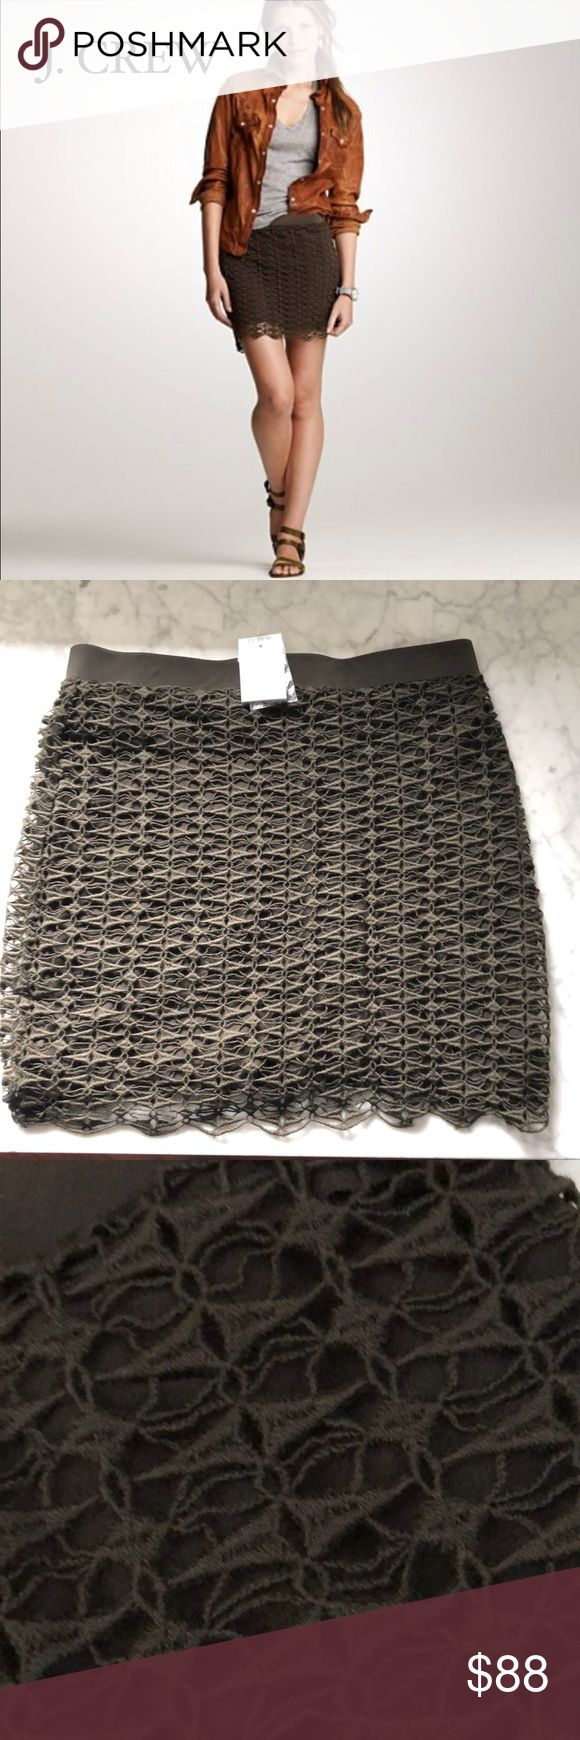 """J. Crew Lace Mini Skirt NWT. Never worn. Perfect condition. We took our famous Italian merino wool yarn and gave it a chic new look by spinning it into lace (a pattern created in-house by our designers). The result? An elegant wisp of a skirt (lined in bias-cut silk) you won't find anywhere else but here. In a 14-gauge knit. Side zip. 16 1/2"""" long. Part of J.Crew Collection. Import. 100% Merino Wool. Lining: 100% Silk. True color is 3rd pic. Chocolate brown. J. Crew Skirts Mini"""